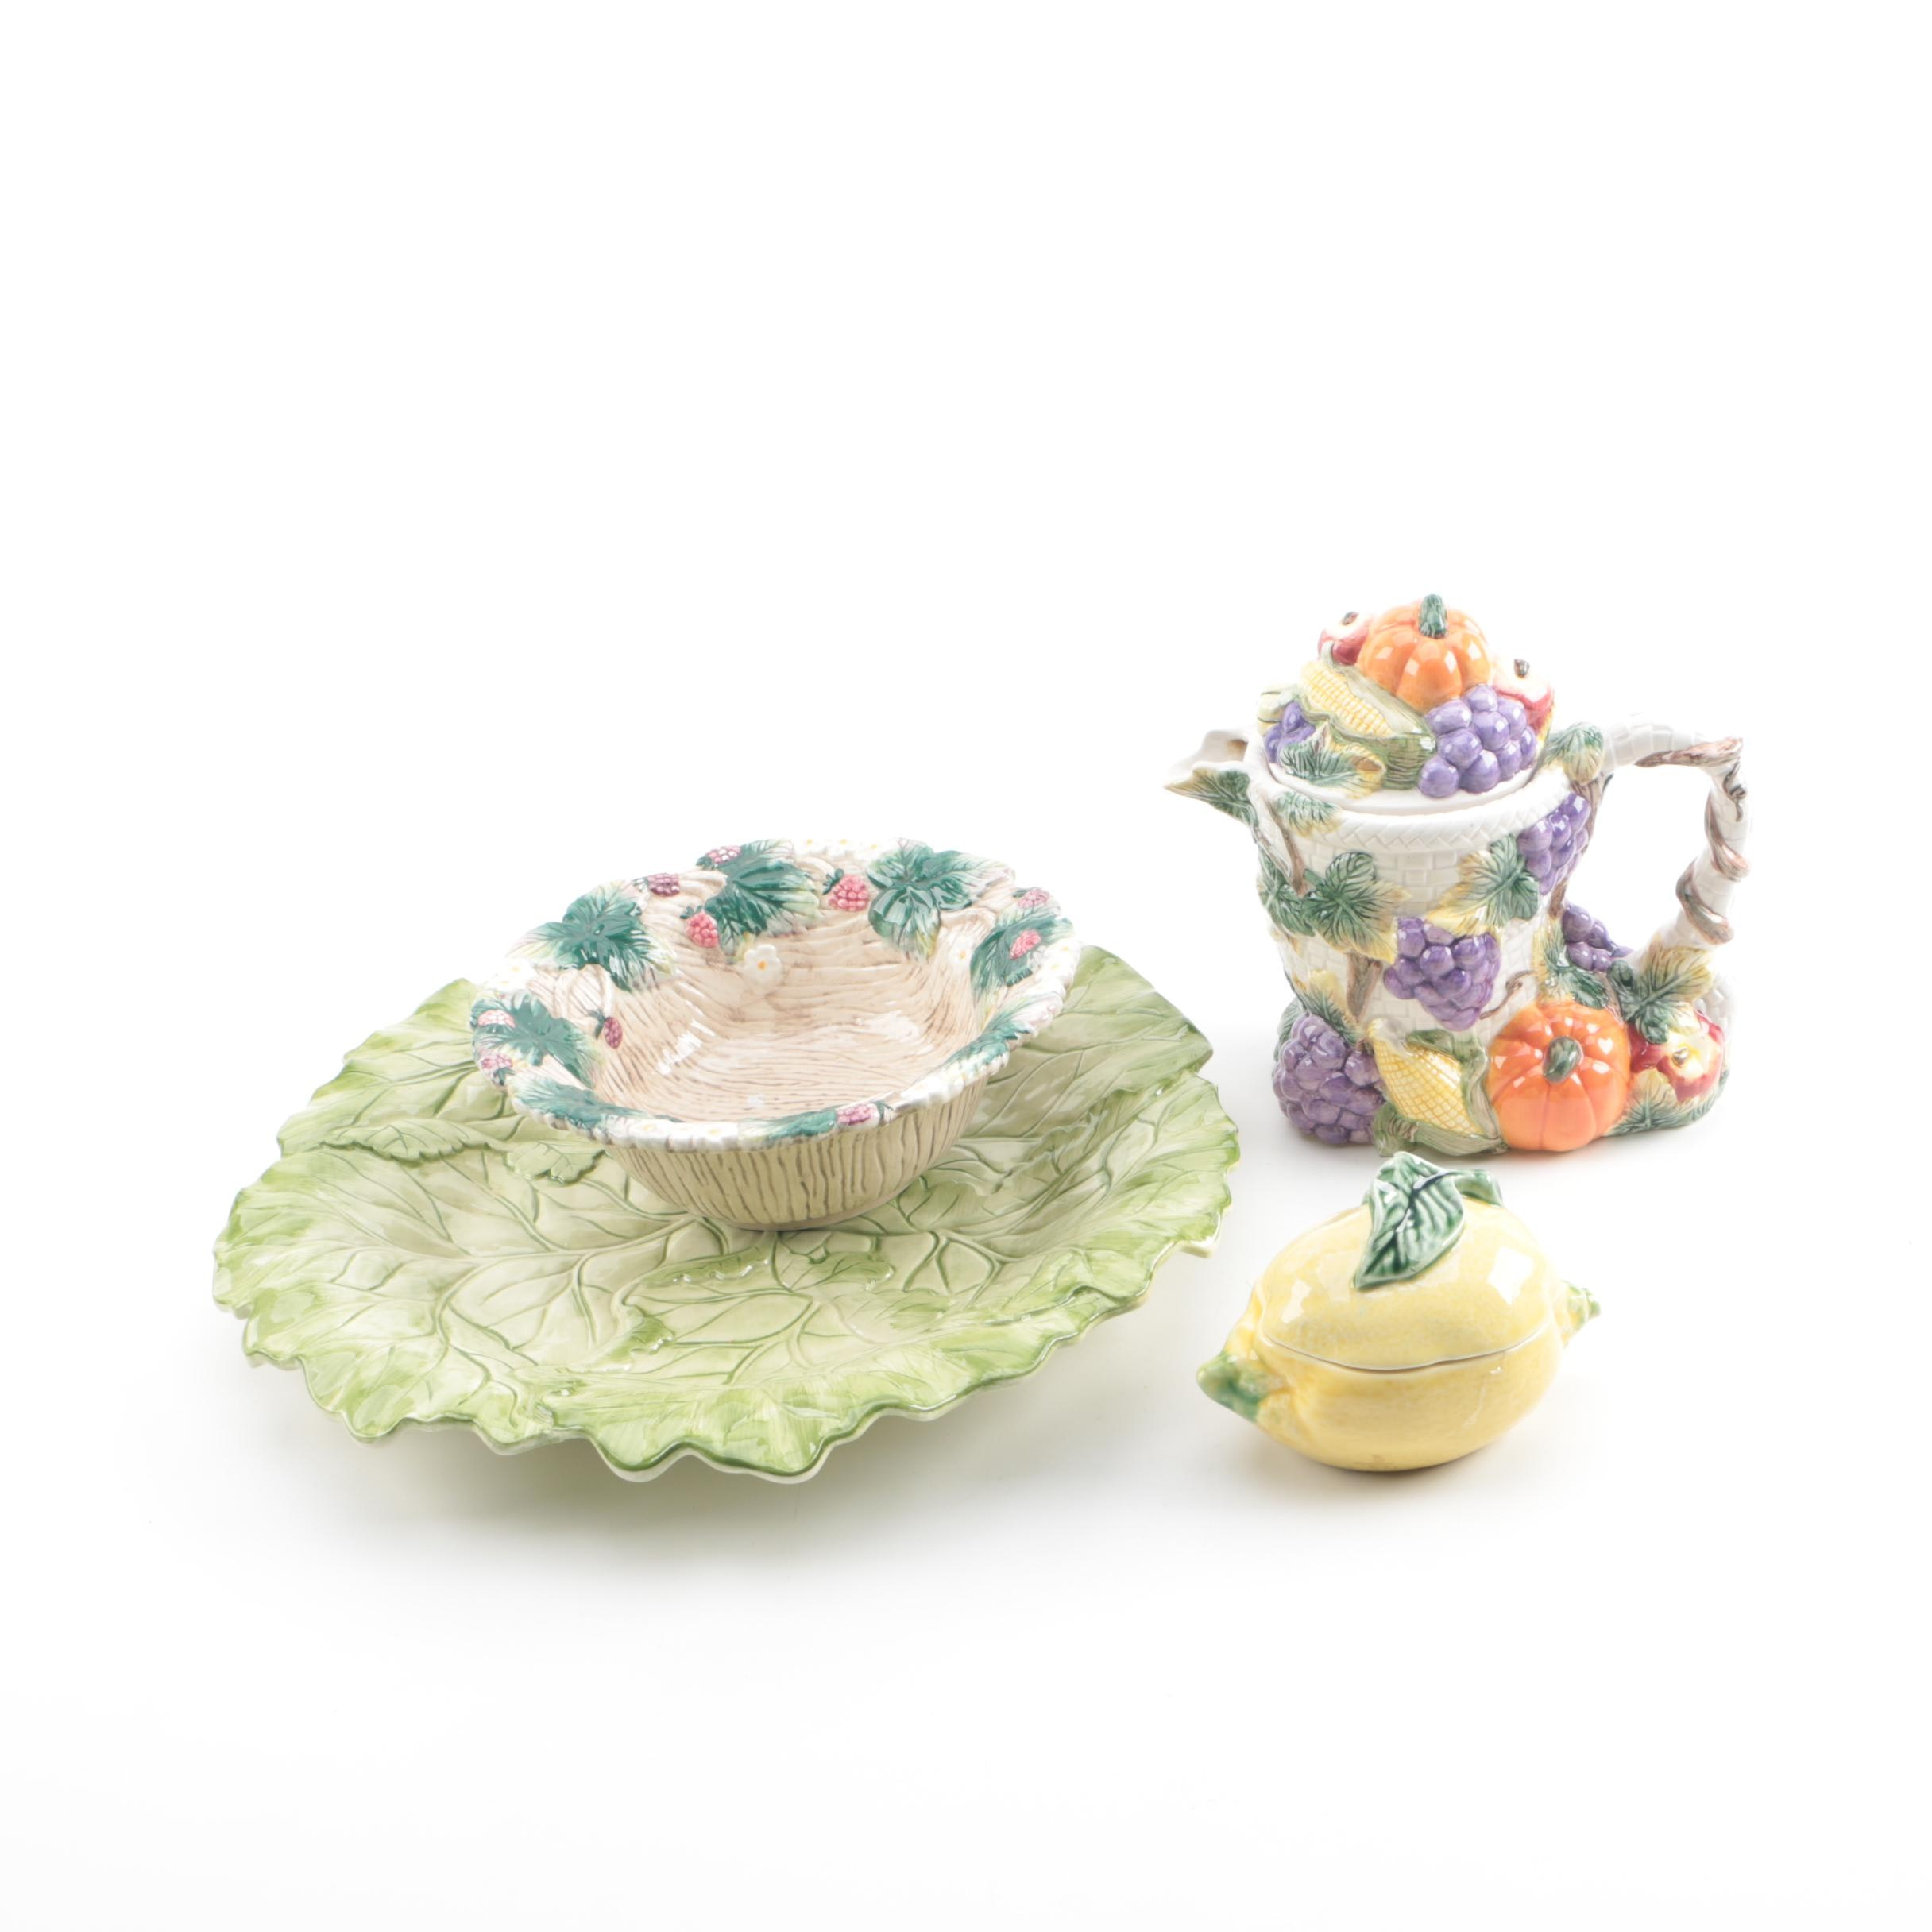 Fruit and Vegetable Themed Serveware by Fitz and Floyd and Bordallo Pinneiro